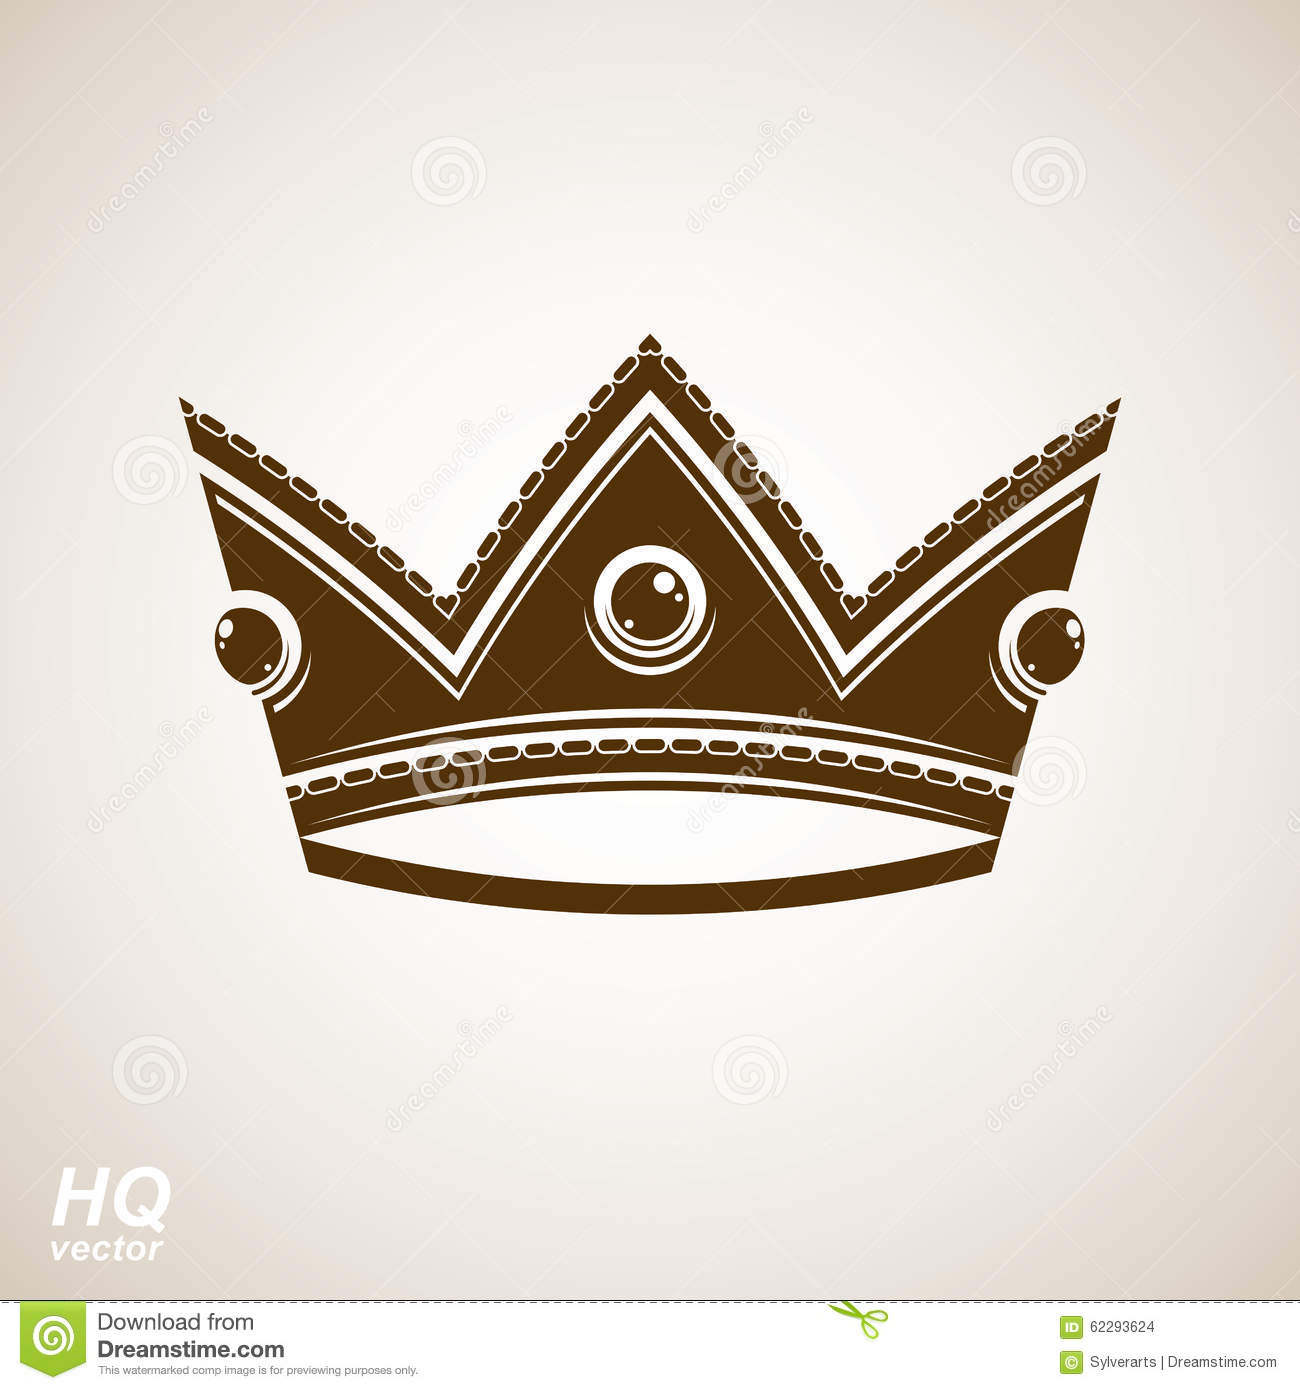 Regal Design Regal Design Stock Illustrations – 5,480 Regal Design Stock Illustrations, Vectors & Clipart - Dreamstime